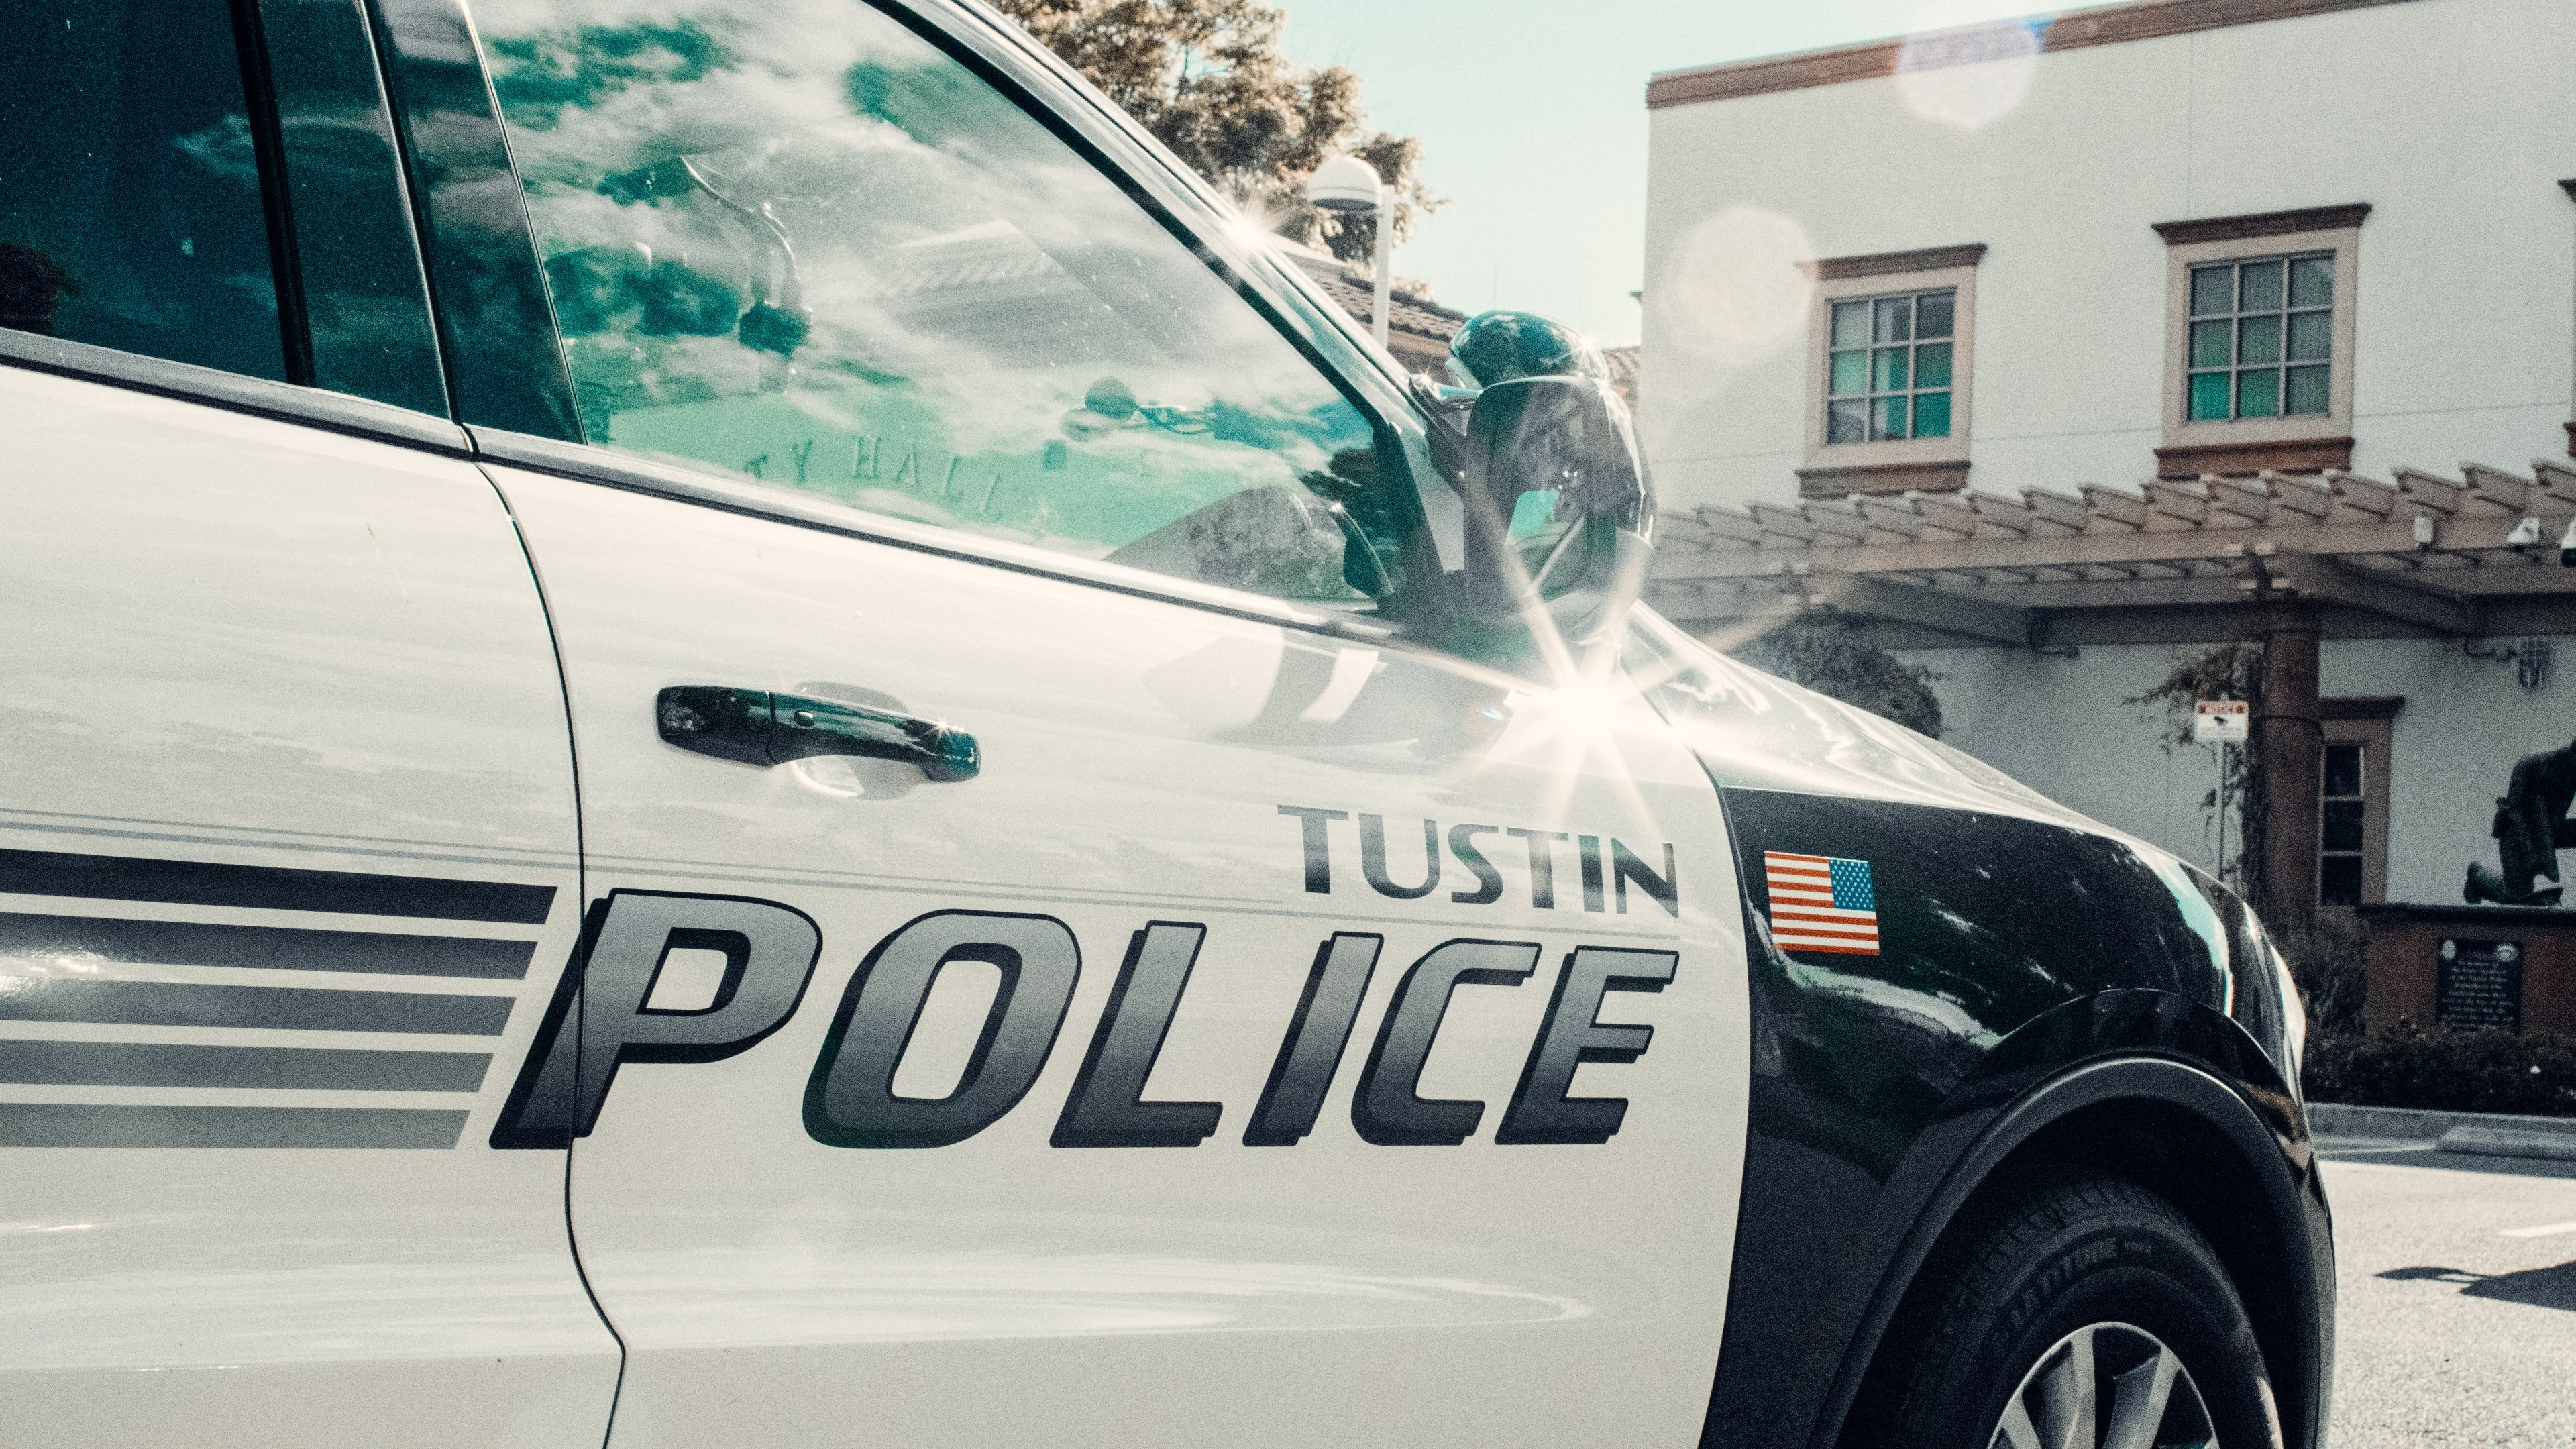 Pictured - An image of a black and white police vehicle | Source: Pexels